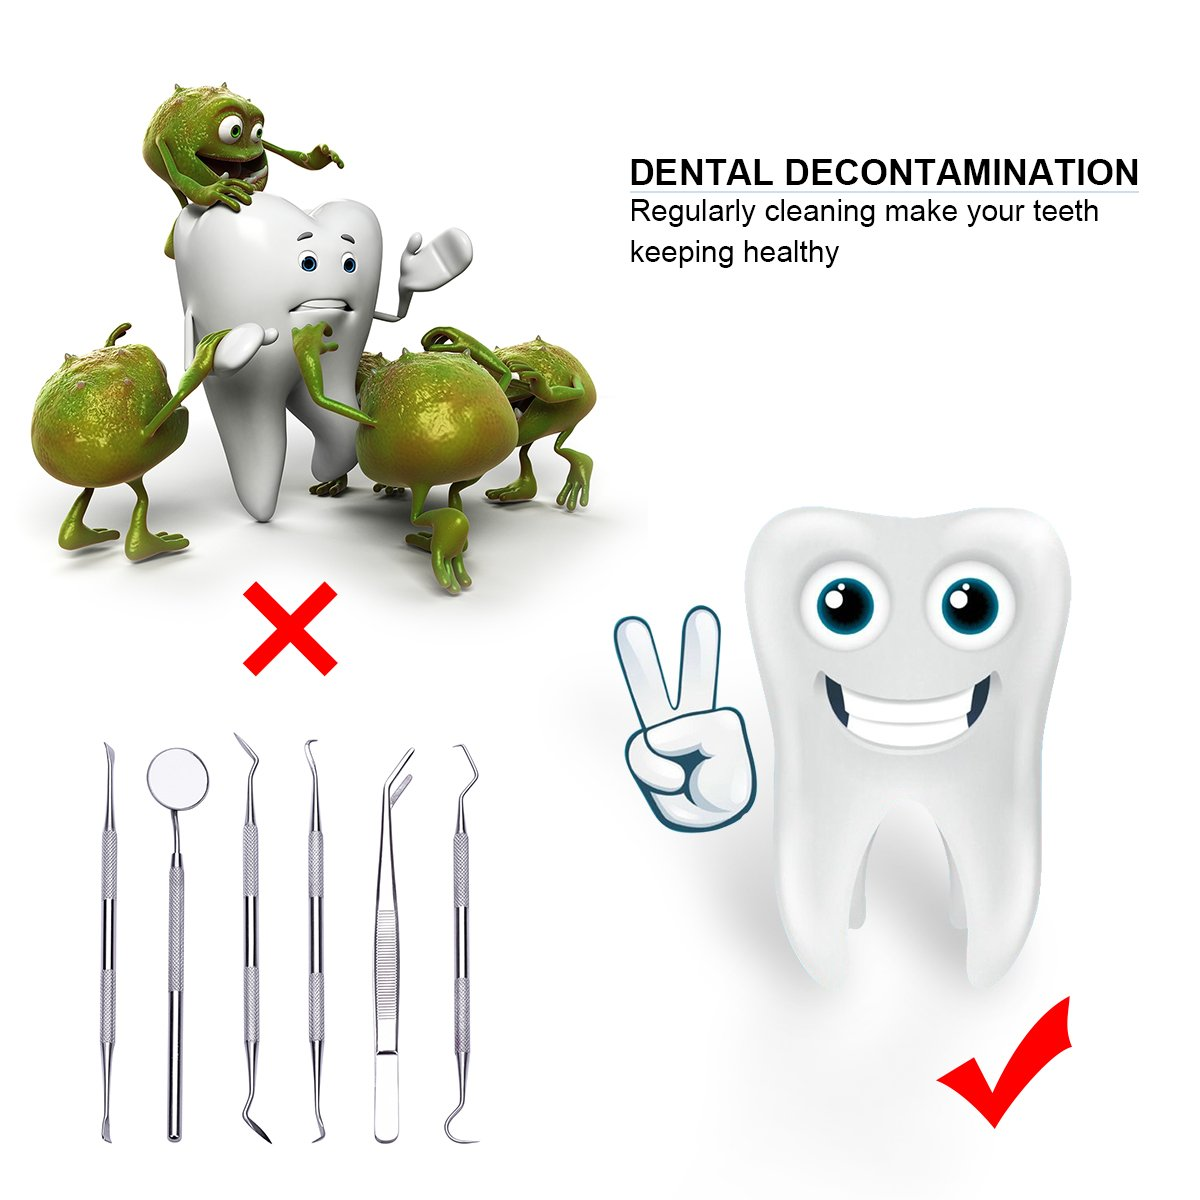 Dental Scraper,TANTAI Dental Pick Hygiene Kit Set- 6 Pack,100% Medical Stainless Steel,Tooth Stains Scraper Remover,Tweezers Dental Gum Floss for Personal or Pet Oral Care Use by TANTAI (Image #5)